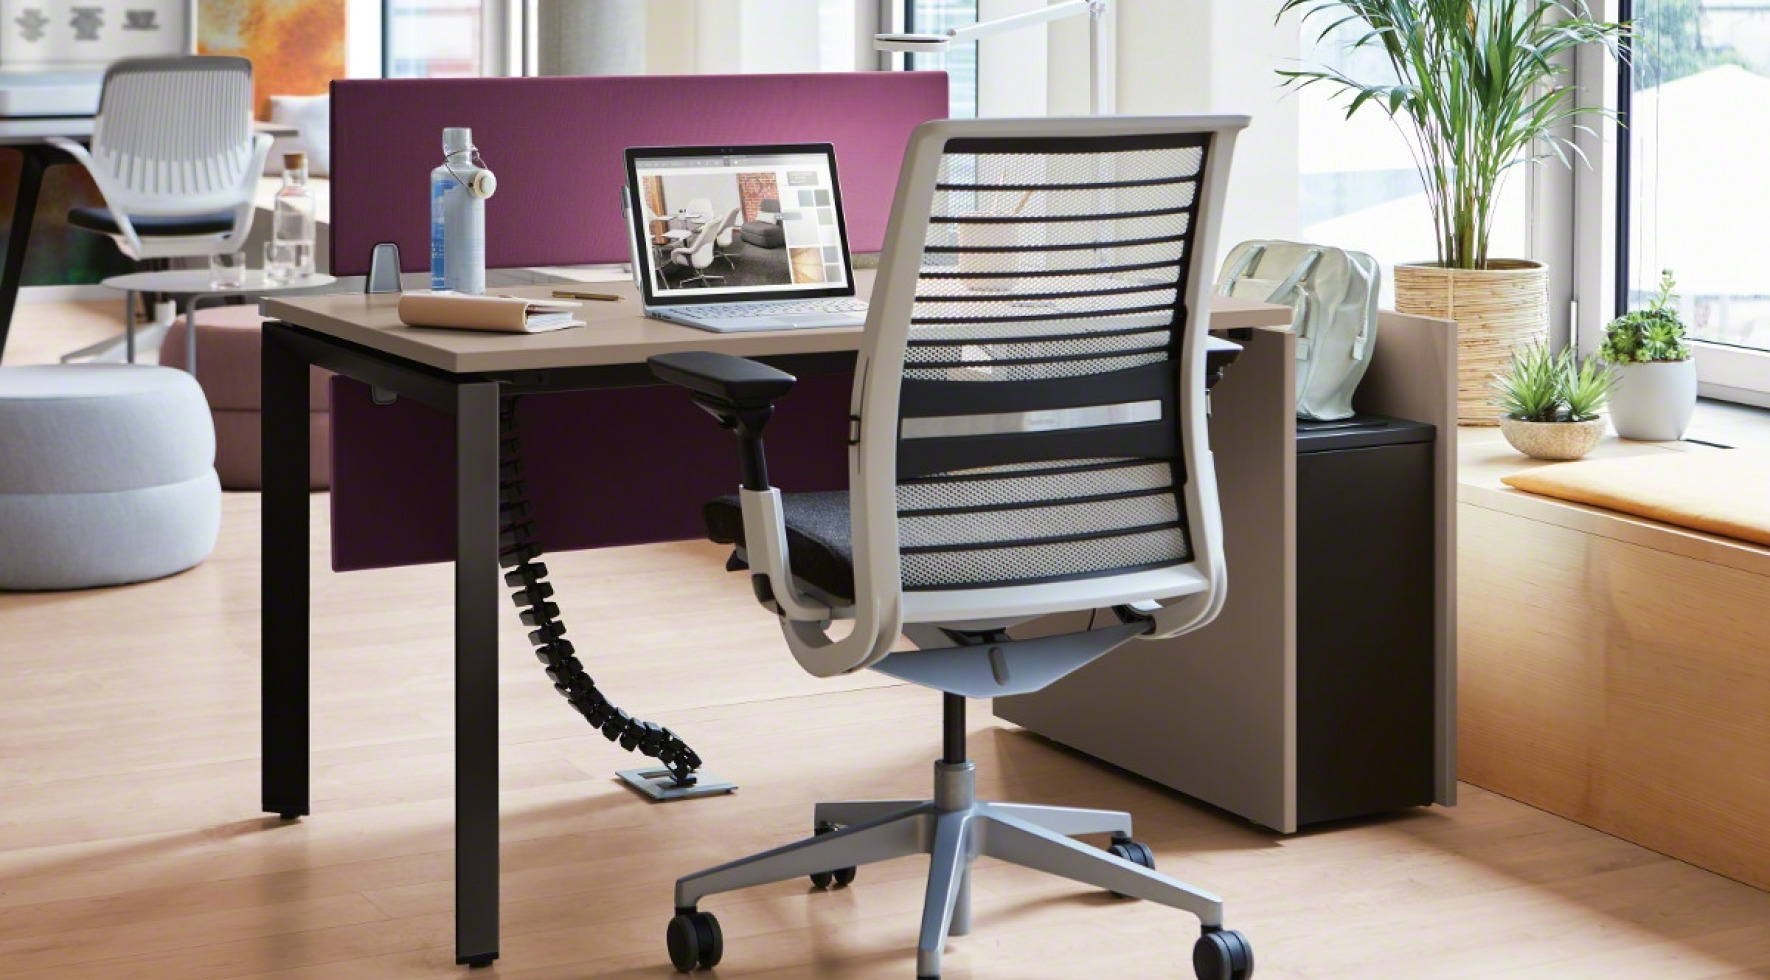 Top ergonomic office chairs - Texas Wilson